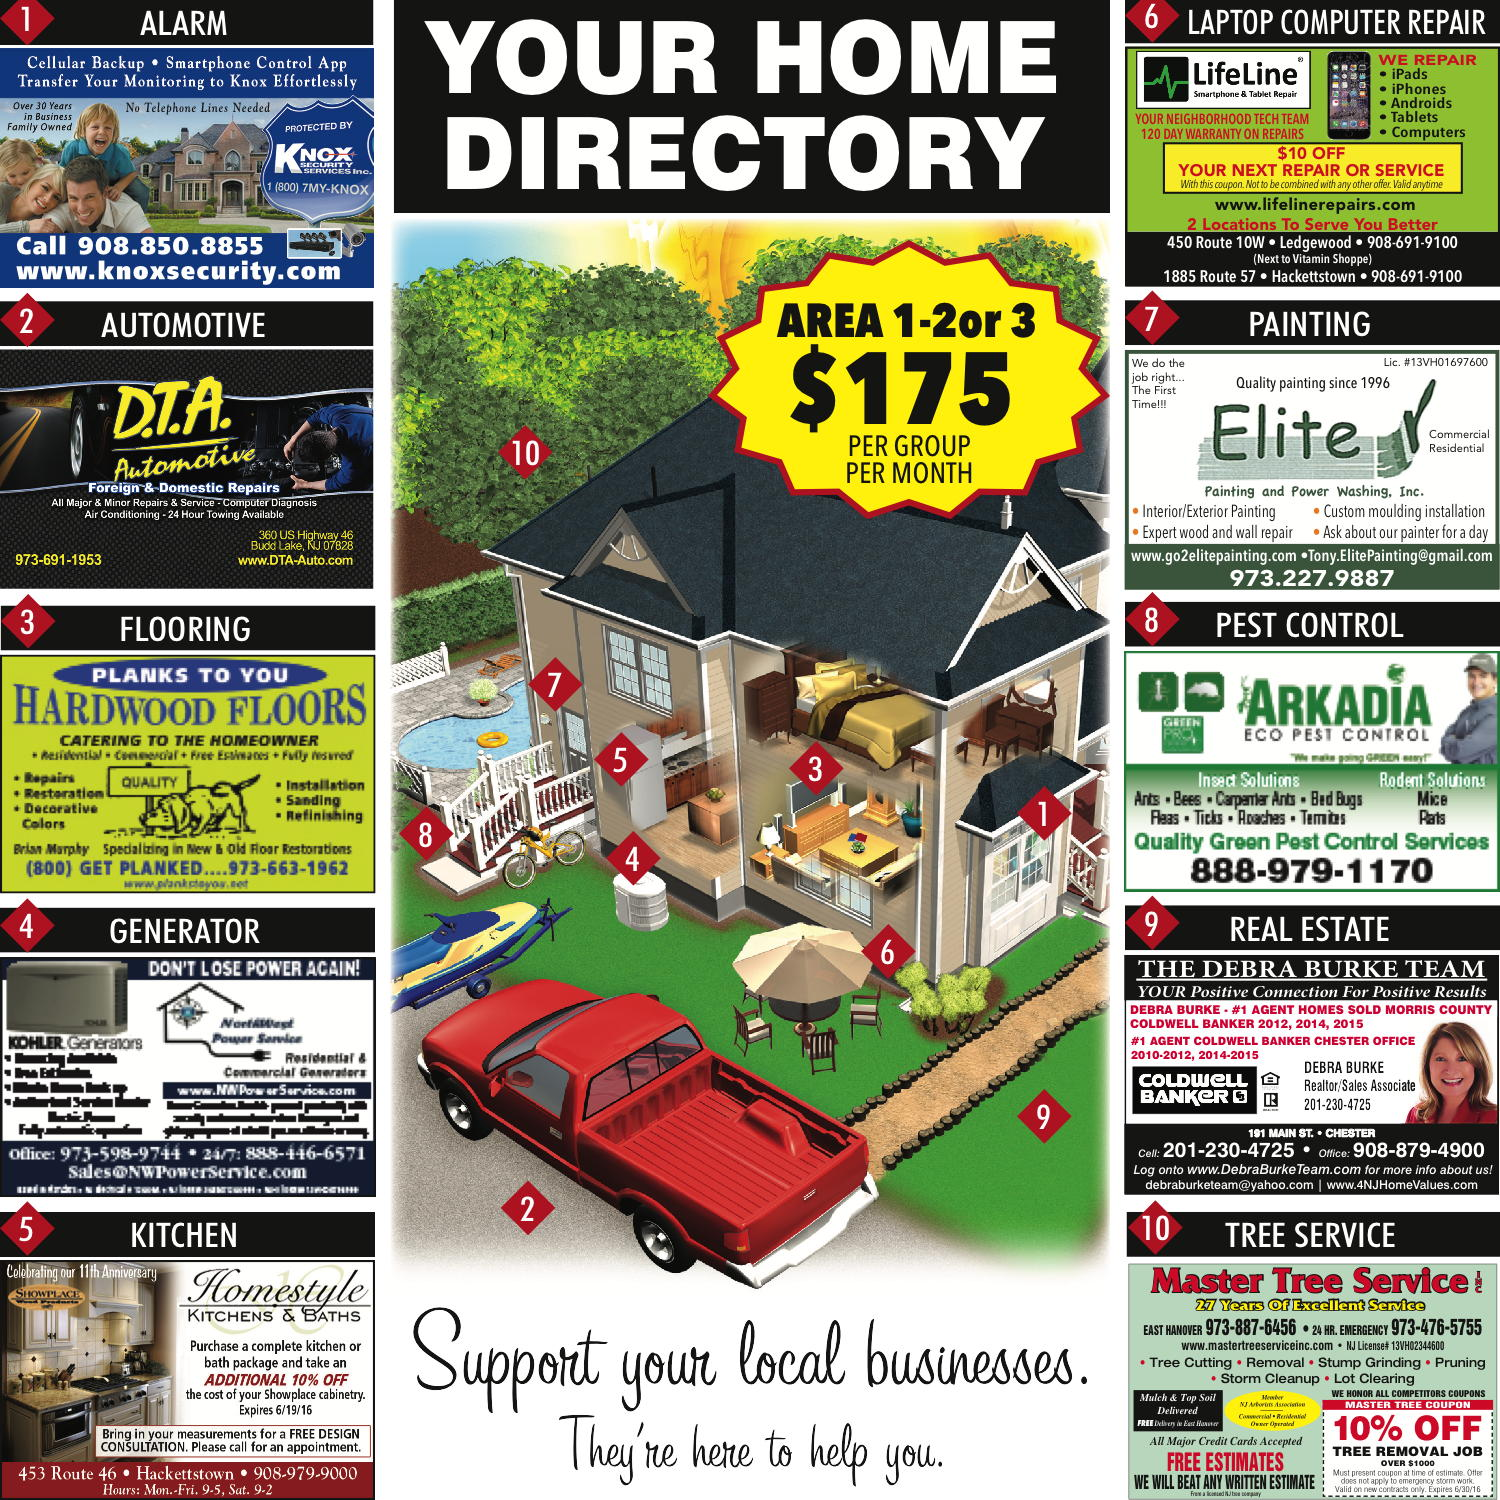 Your Home DIrectory.indd